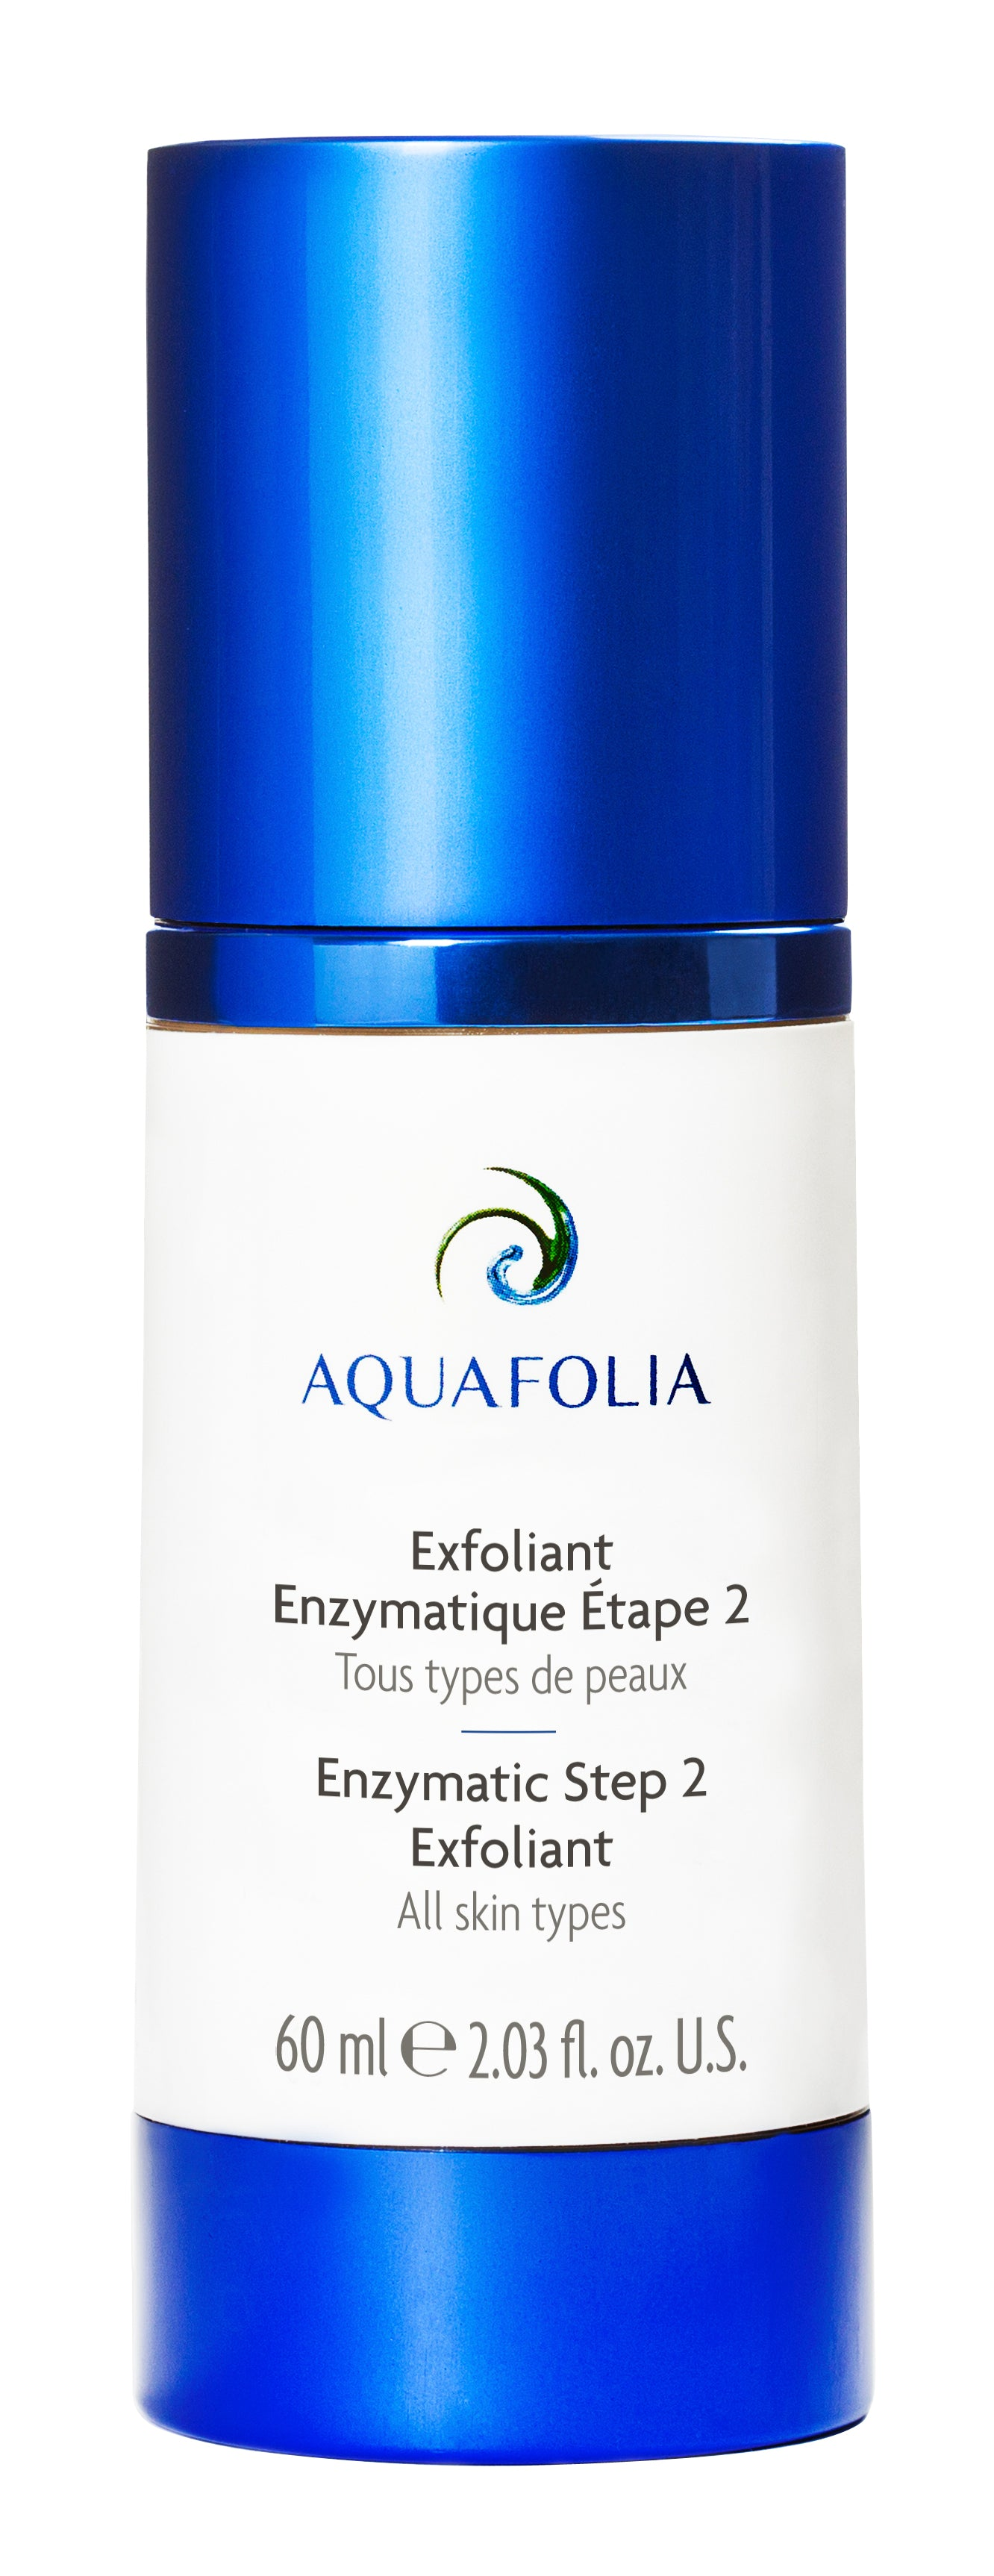 Enzymatic Exfoliant Step 2